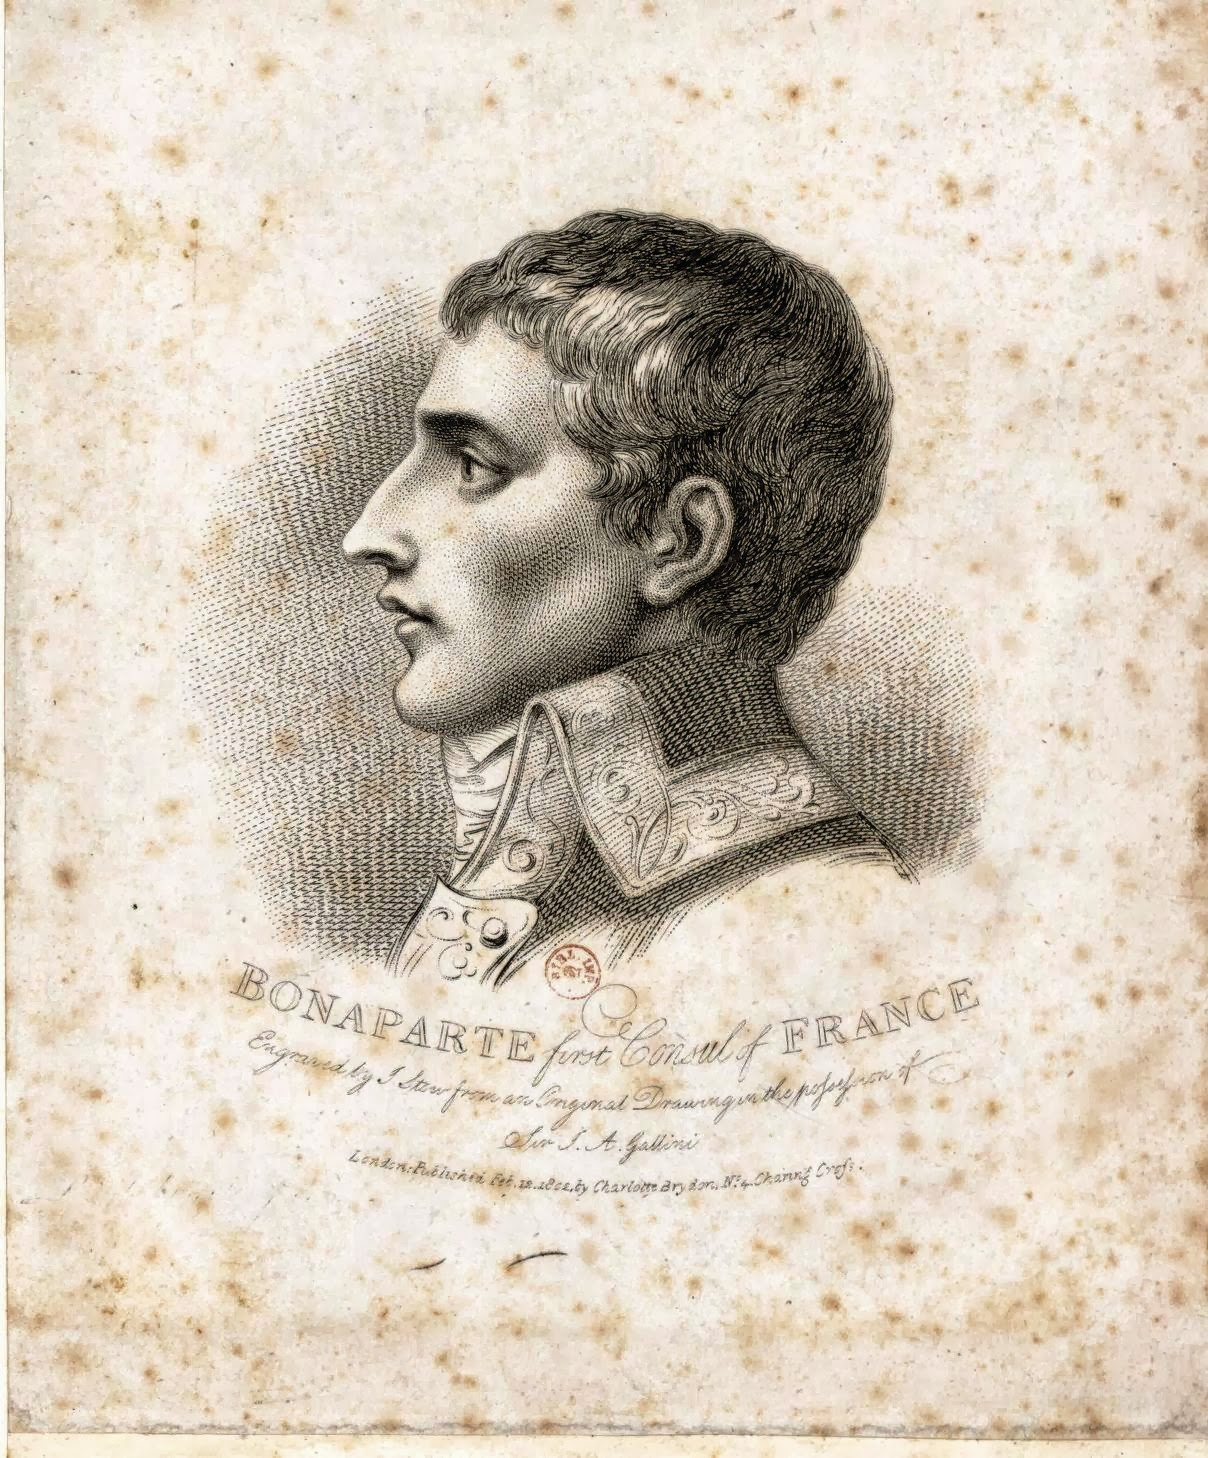 a biography of napoleon bonaparte the french emperor The rule of napoleon and how he tried to end the french revolution learn with flashcards 35 terms mrspruitts french revolution & napoleon bonaparte the rule of napoleon and how he tried to end the french revolution overthrew french directory in 1799 and became emperor of the french.